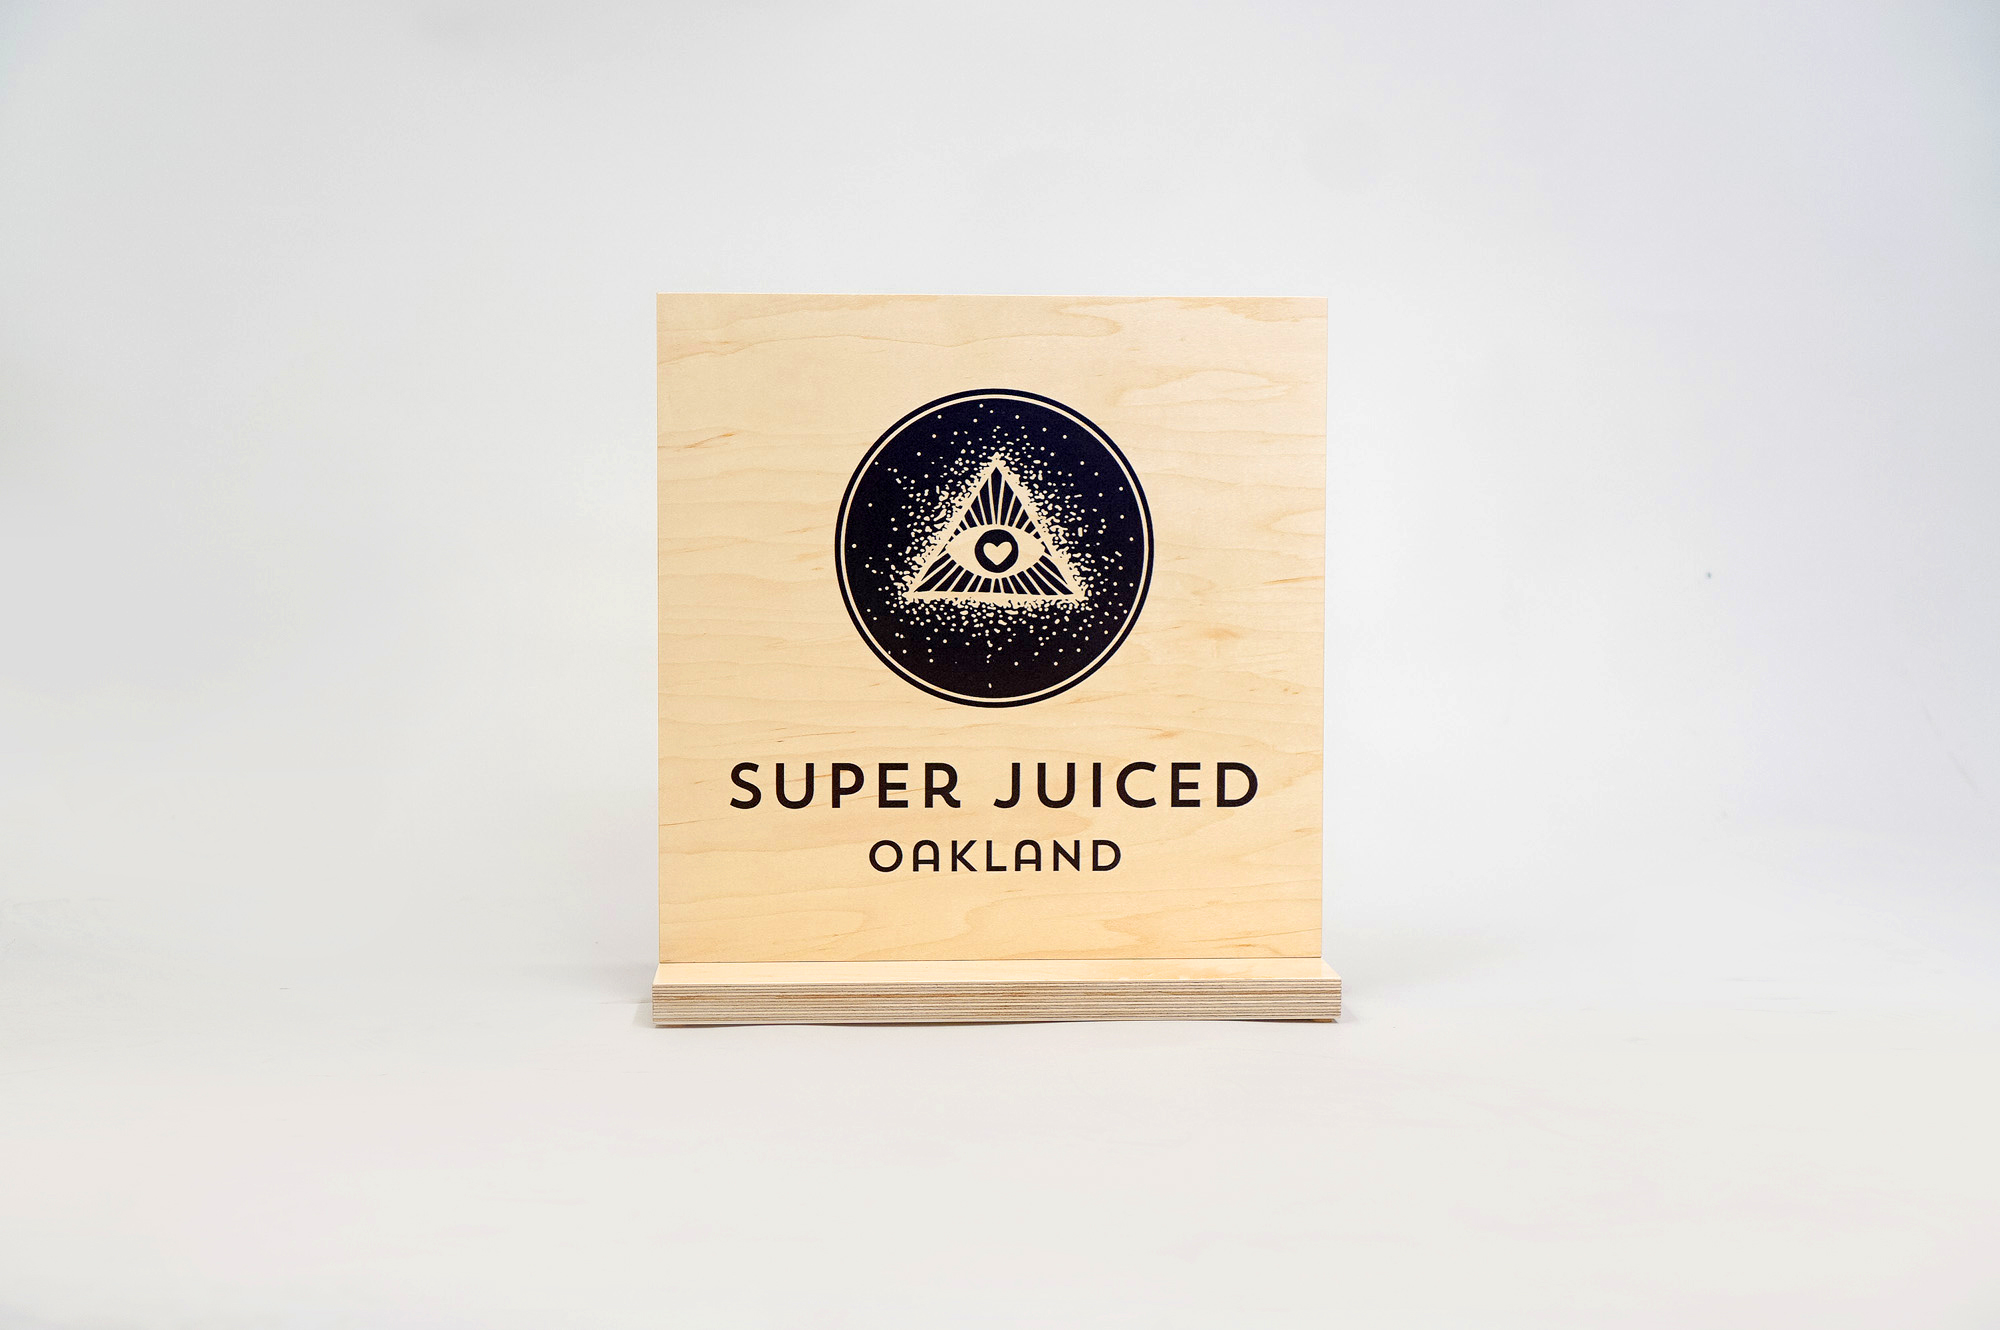 Light wood tabletop sign with black print for the retail location of Super Juiced, an organic juice and smoothie bar in Old Oakland.